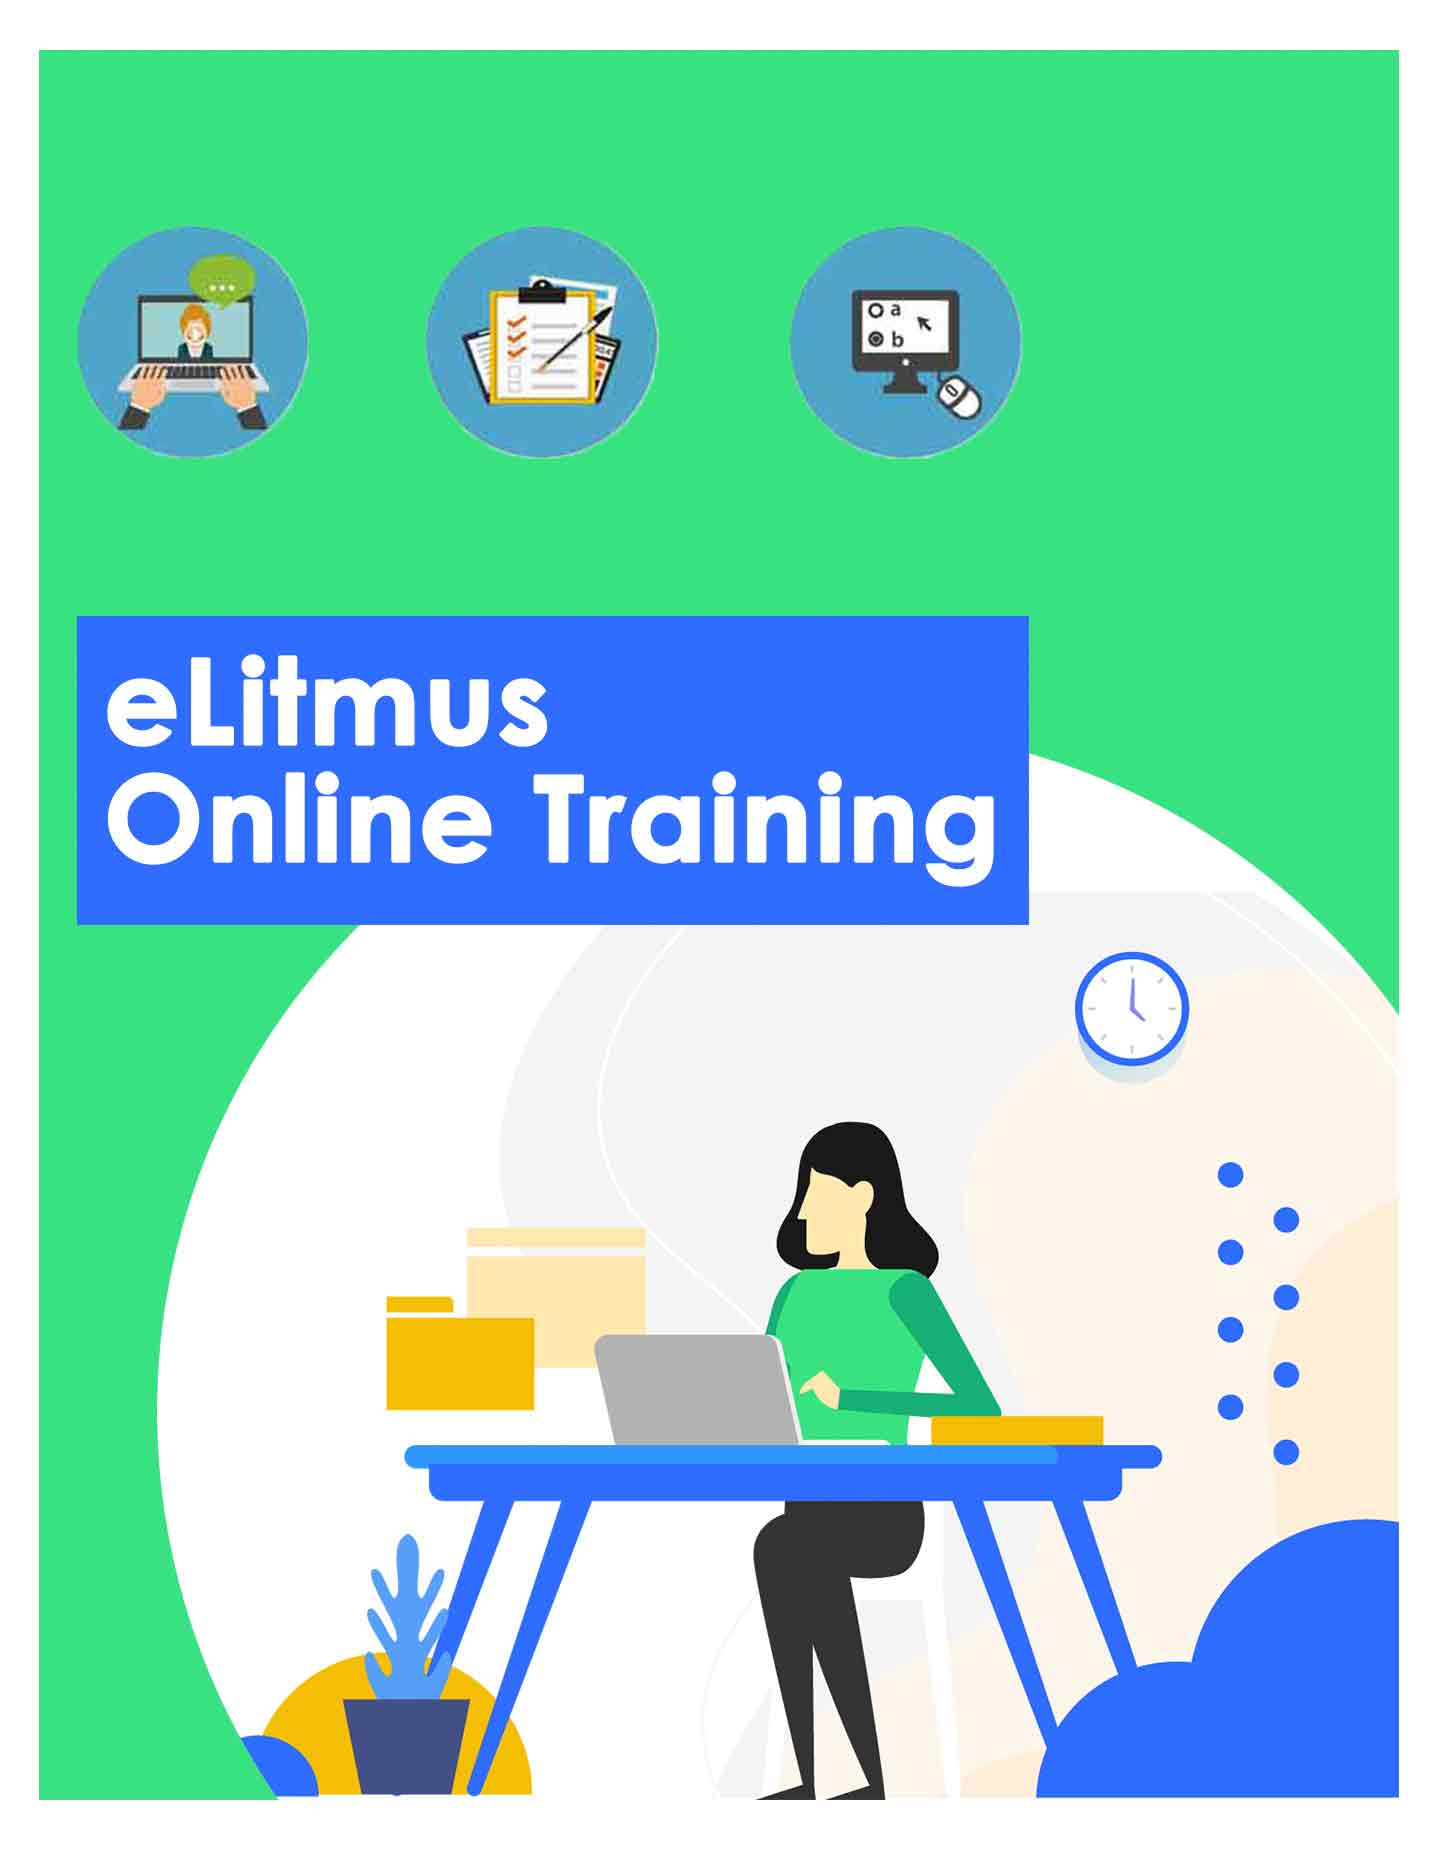 eLitmus Online Training